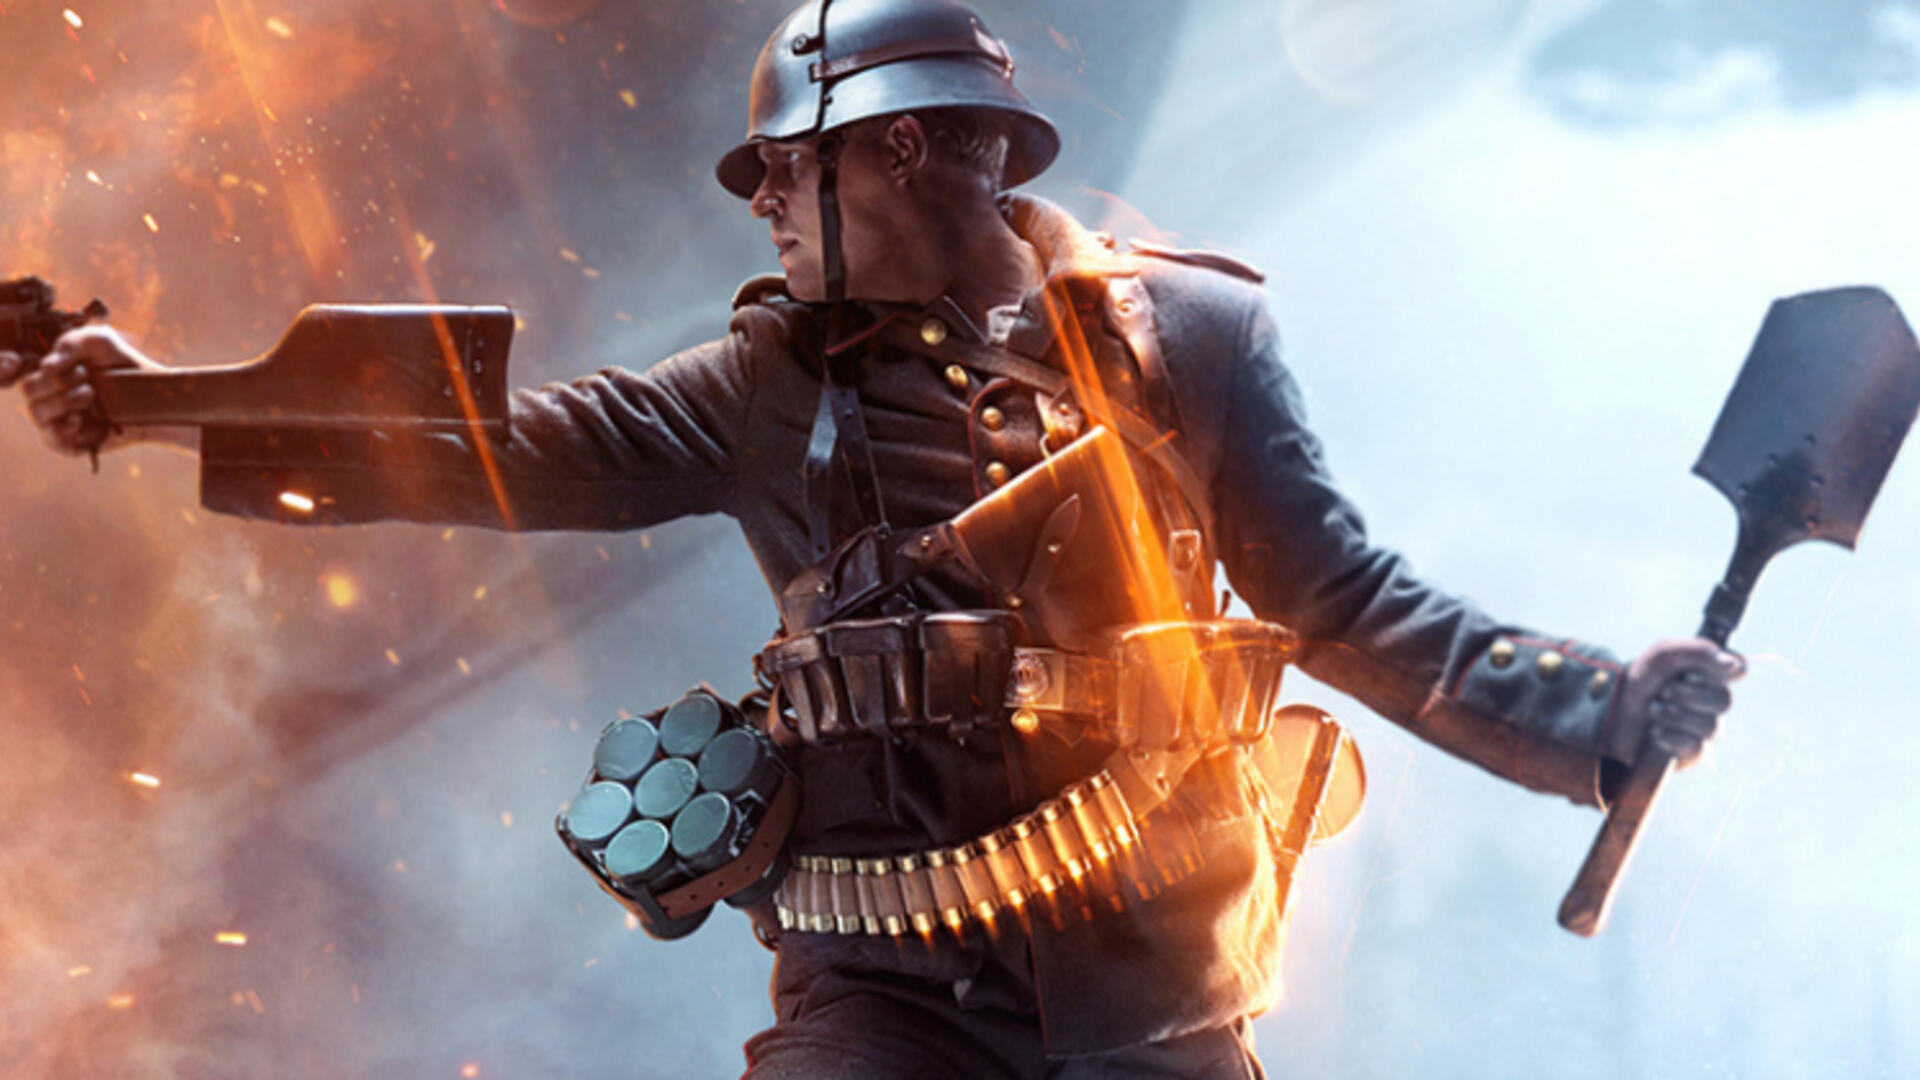 Report: Battlefield 5 is Testing a Battle Royale Mode Also